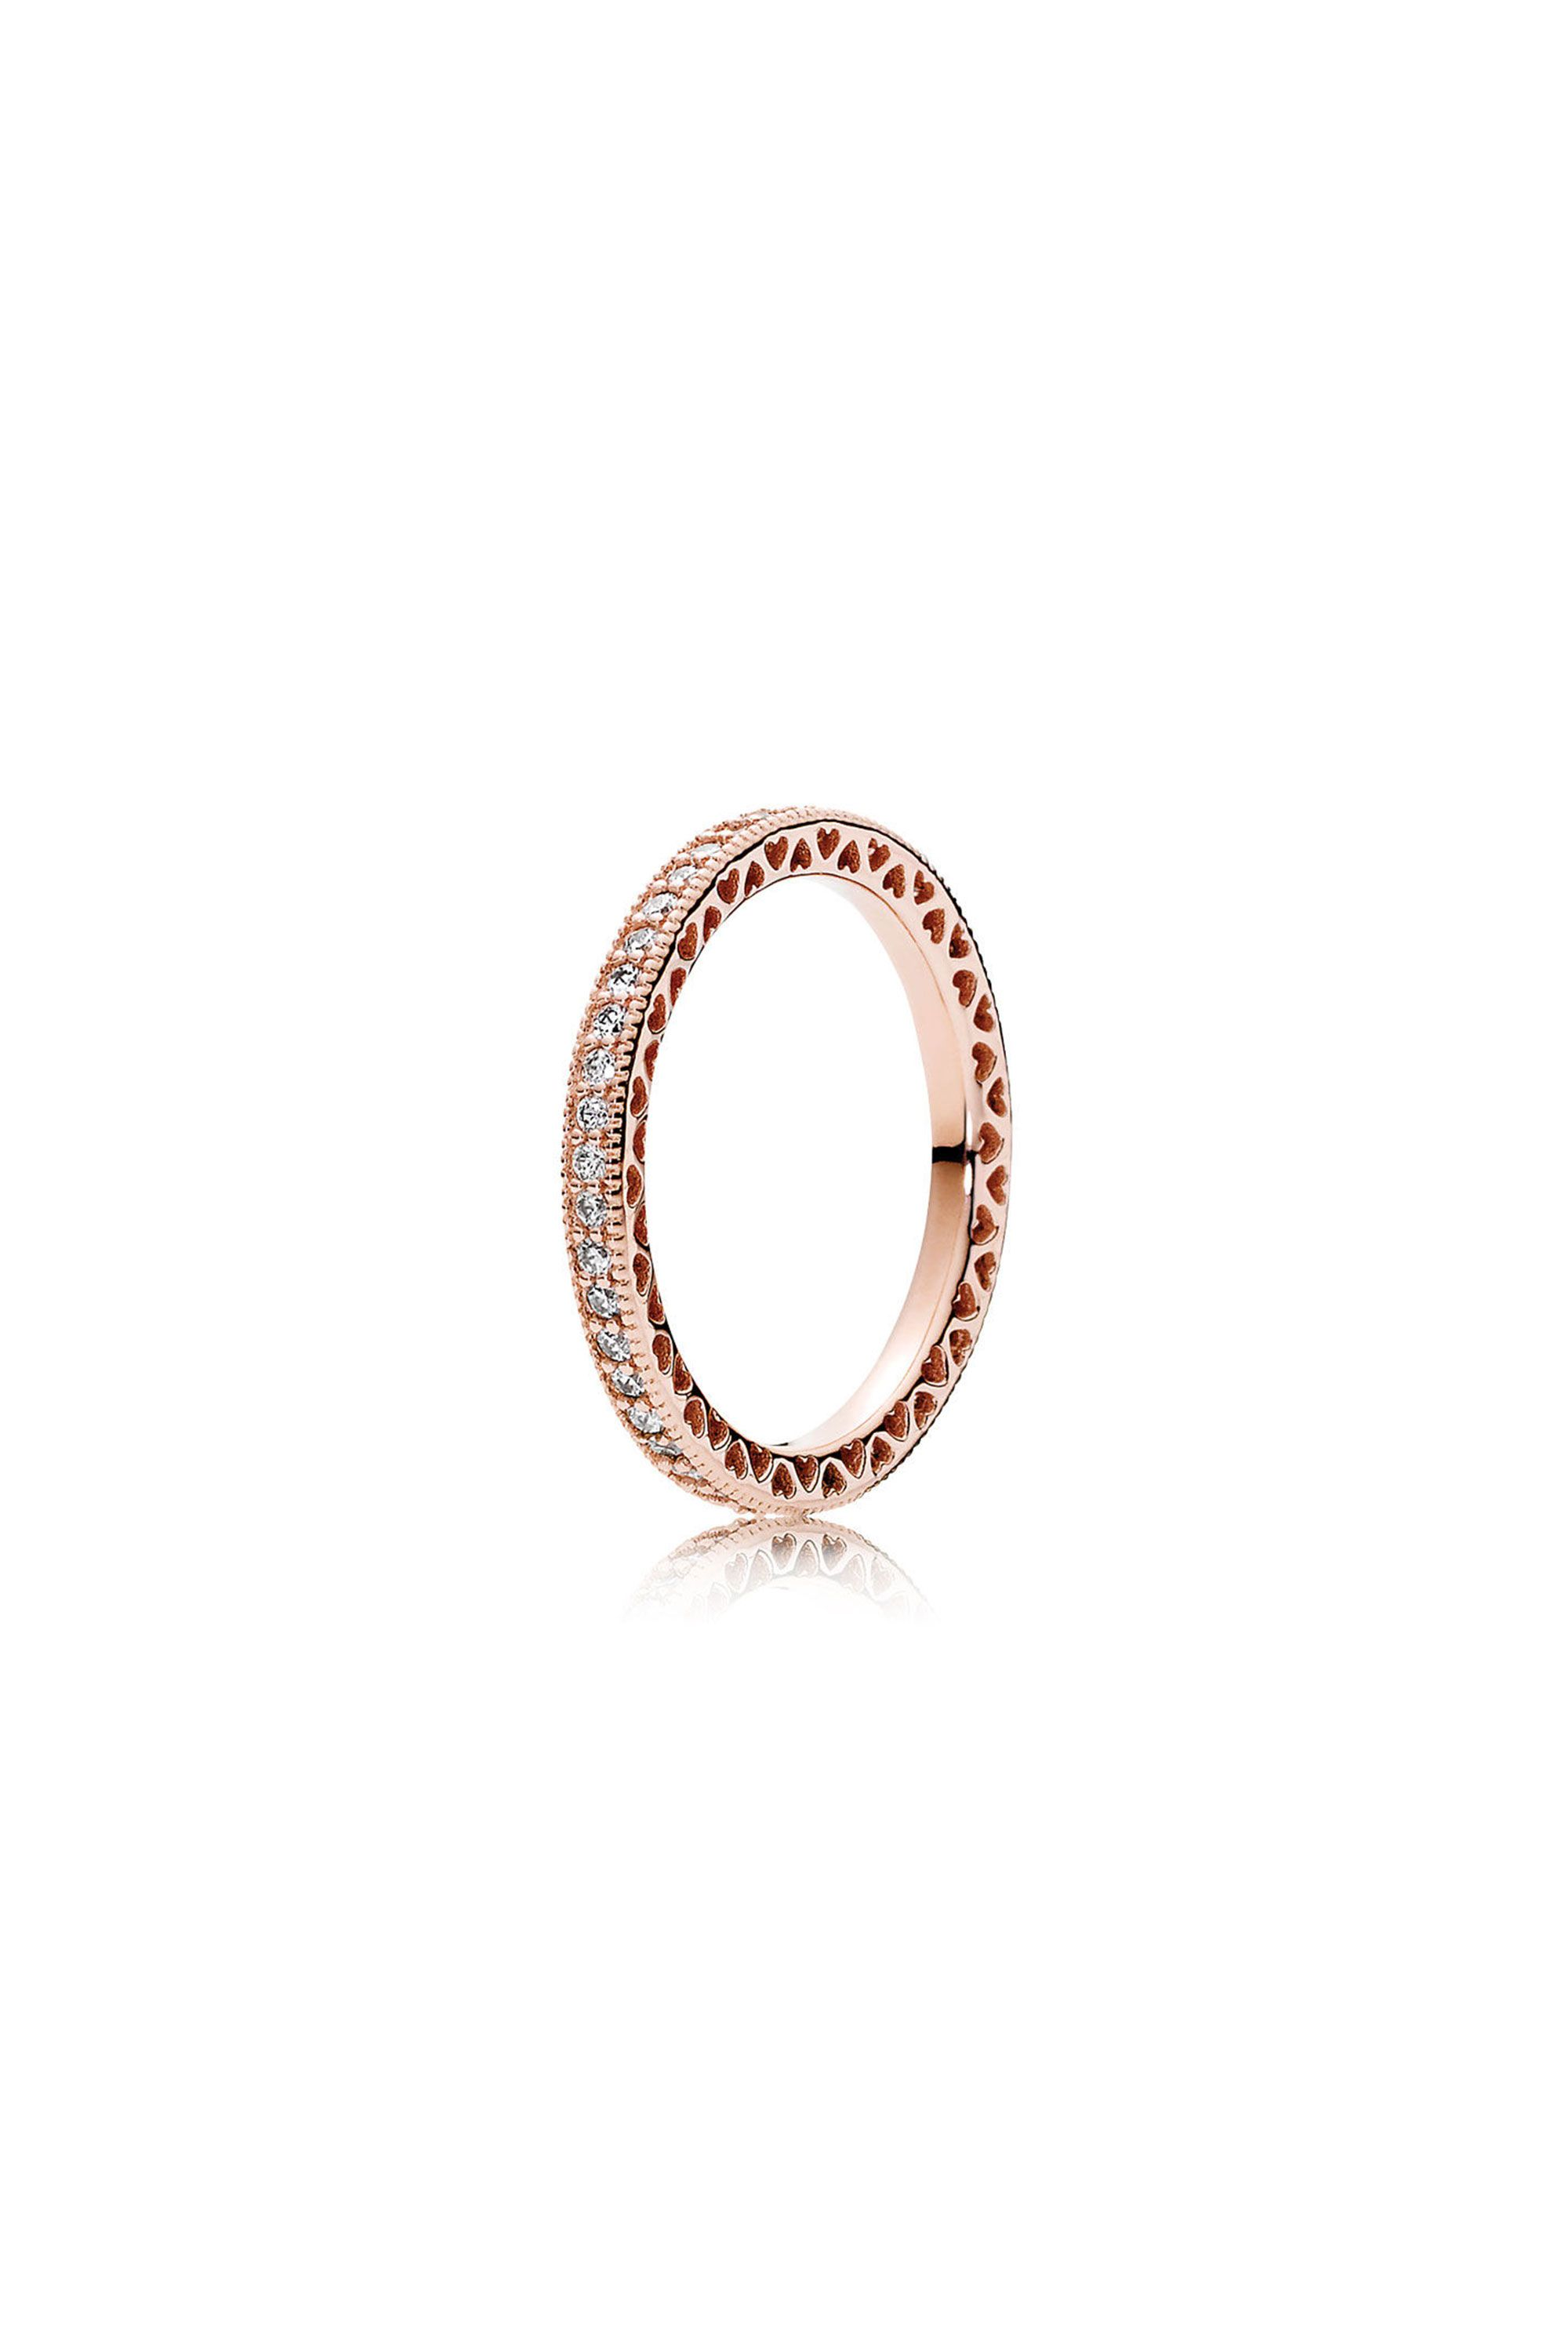 "<p>""My other BFFs can expect jewelry as well, and this delicate rose gold-colored eternity ring is perfect for mixing and matching and stacking with other metals."" <em data-redactor-tag=""em"" data-verified=""redactor"">$90, </em><a href=""https://estore-us.pandora.net/en-us/hearts-of-pandora-pandora-rose-and-clear-cz/180963CZ.html?cid=BrndMedia_Drop6_Dec_2016_MarieClaire_CustomContent_NativeInfluenceArticles_JessiAfskin_HeartsOfPandora_Ring_180963CZ_PDP_Product"" target=""_blank"" data-tracking-id=""recirc-text-link""><em data-redactor-tag=""em"" data-verified=""redactor"" data-tracking-id=""recirc-text-link"">pandora.net</em></a></p>"